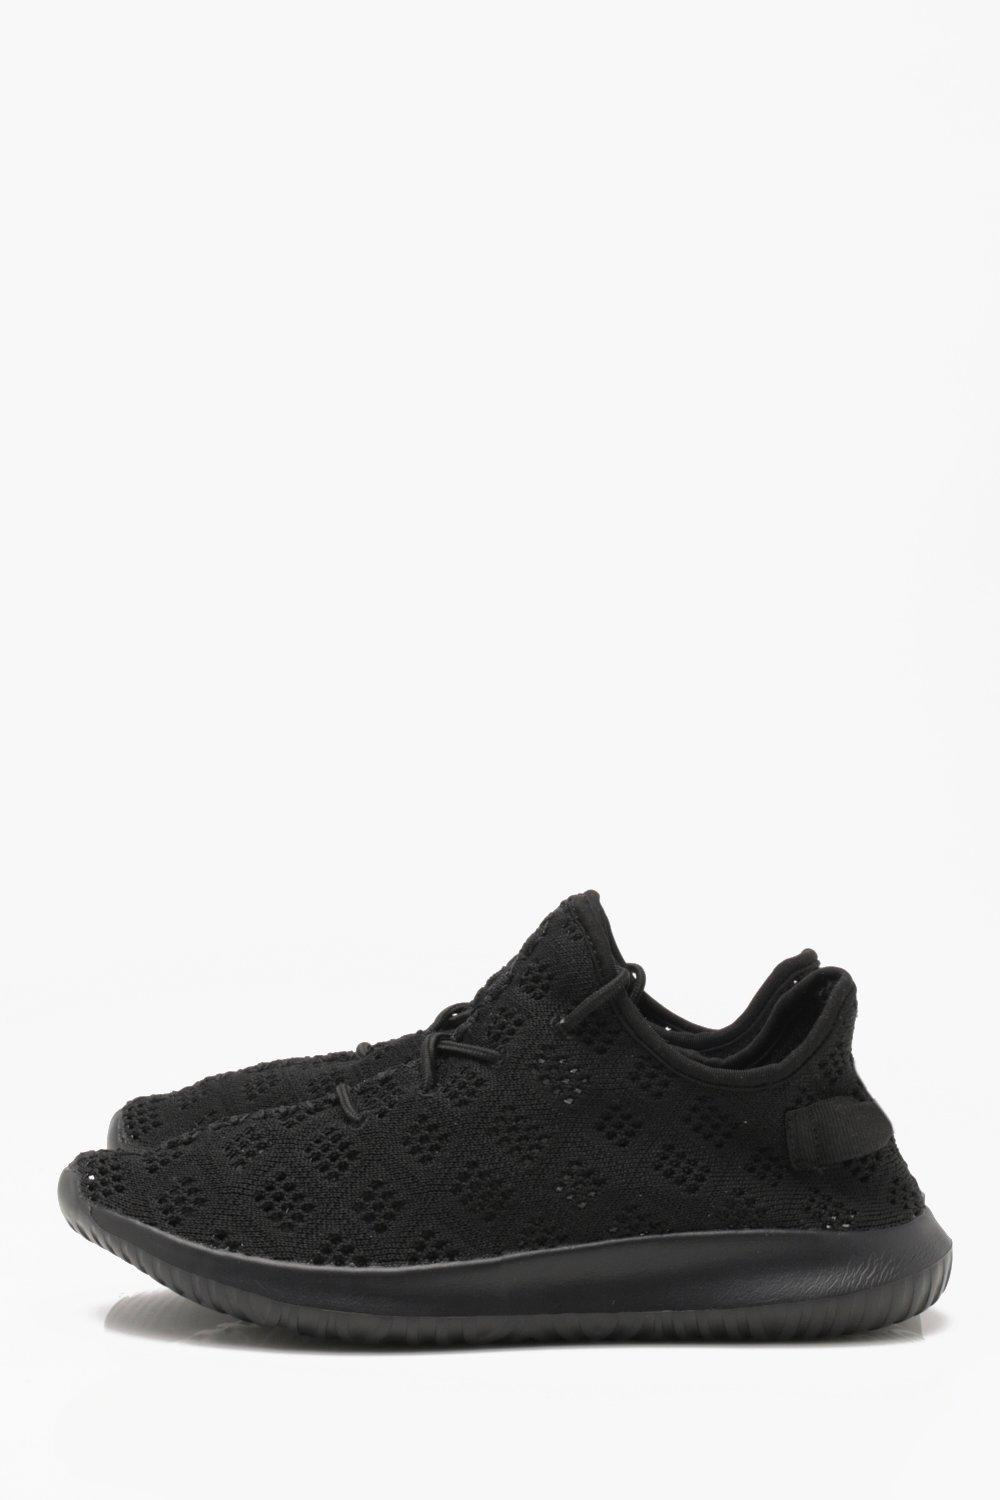 boohooMAN black Honeycomb Knitted Trainer